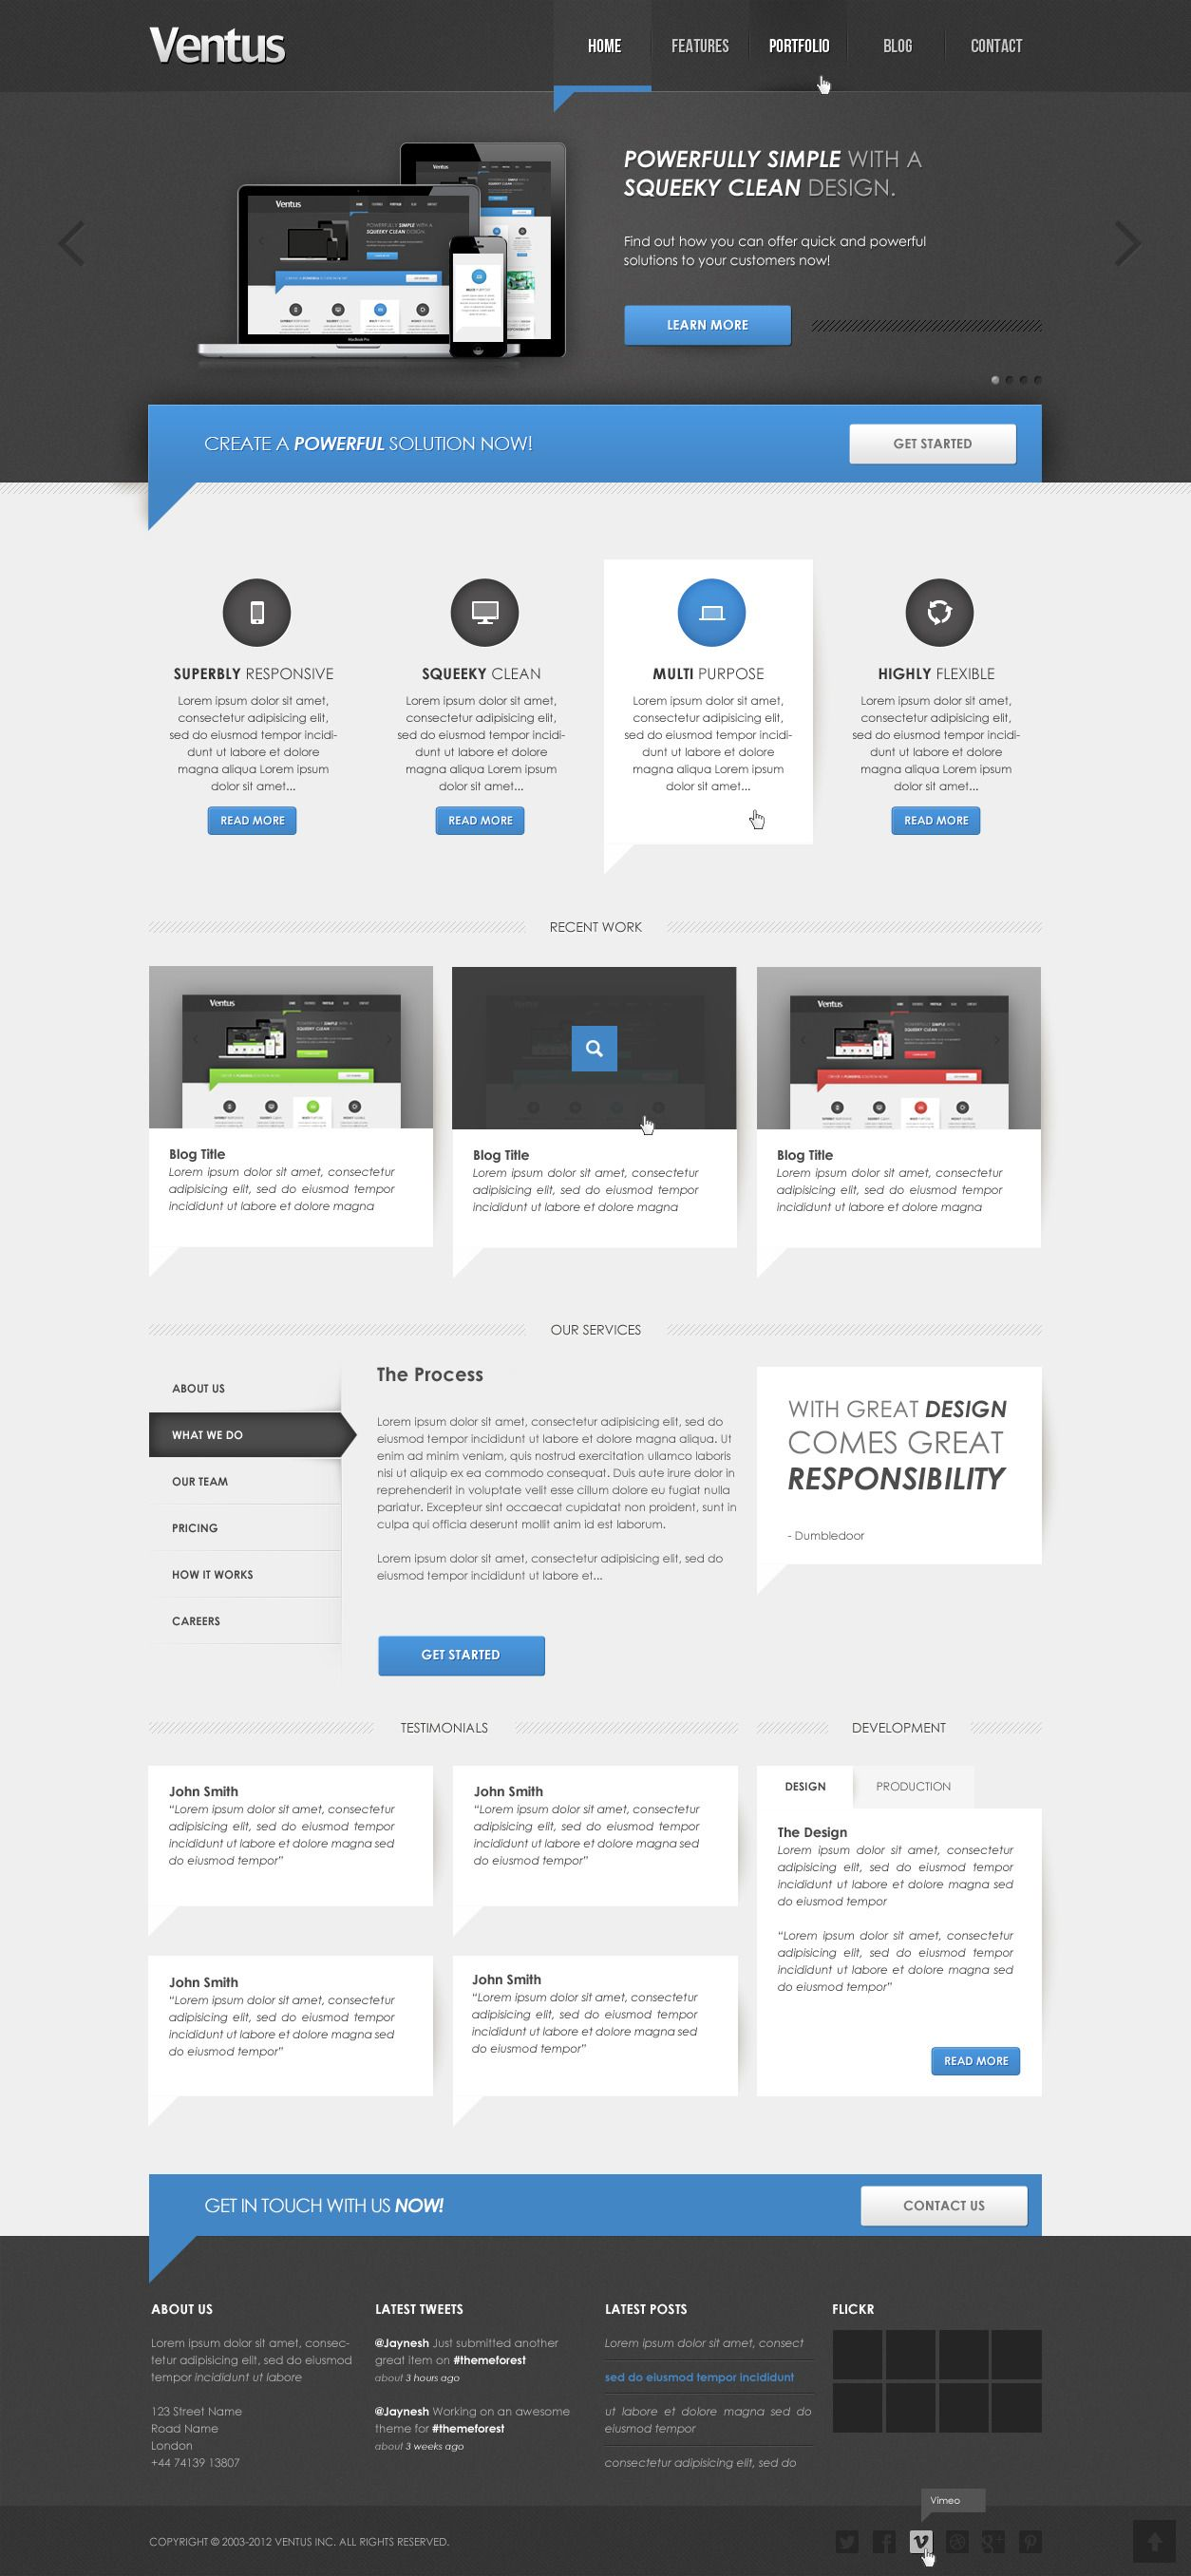 Corporate Web Design Simple Web Design Features That Look Clean And Help Organize Info On Your Site Web Design Small Business Web Design Corporate Web Design